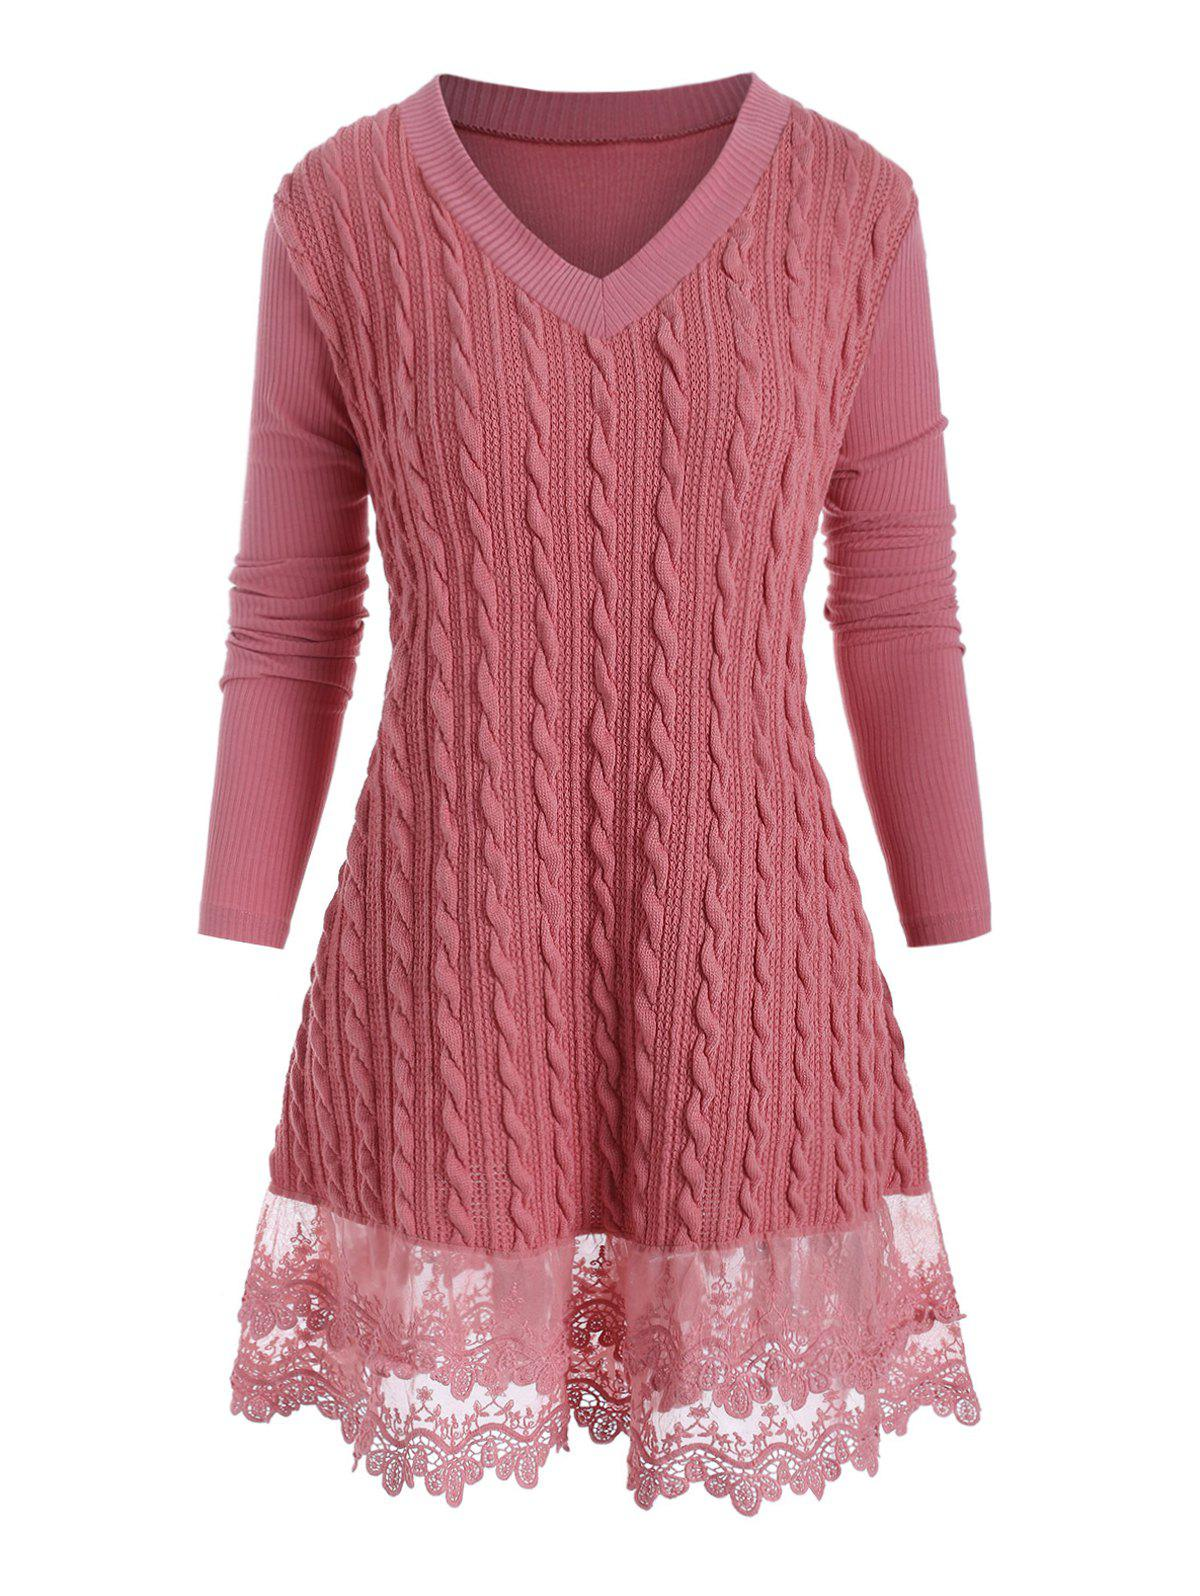 Plus Size V Neck Lace Hem Cable Knit Sweater - ROSE 4X